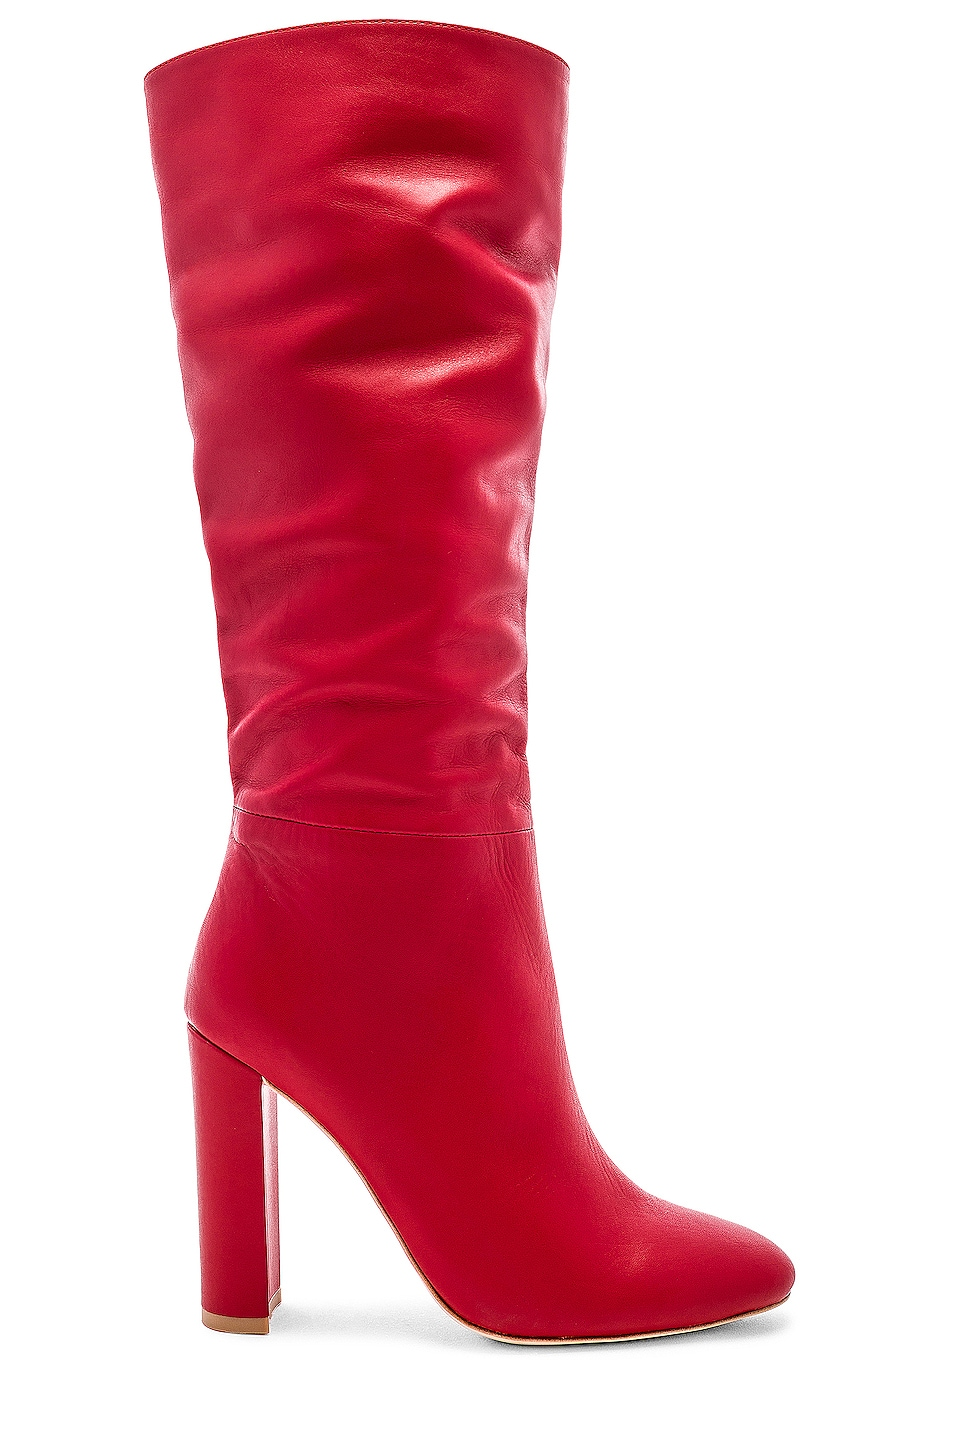 Tony Bianco Jester Boot in Red Denver